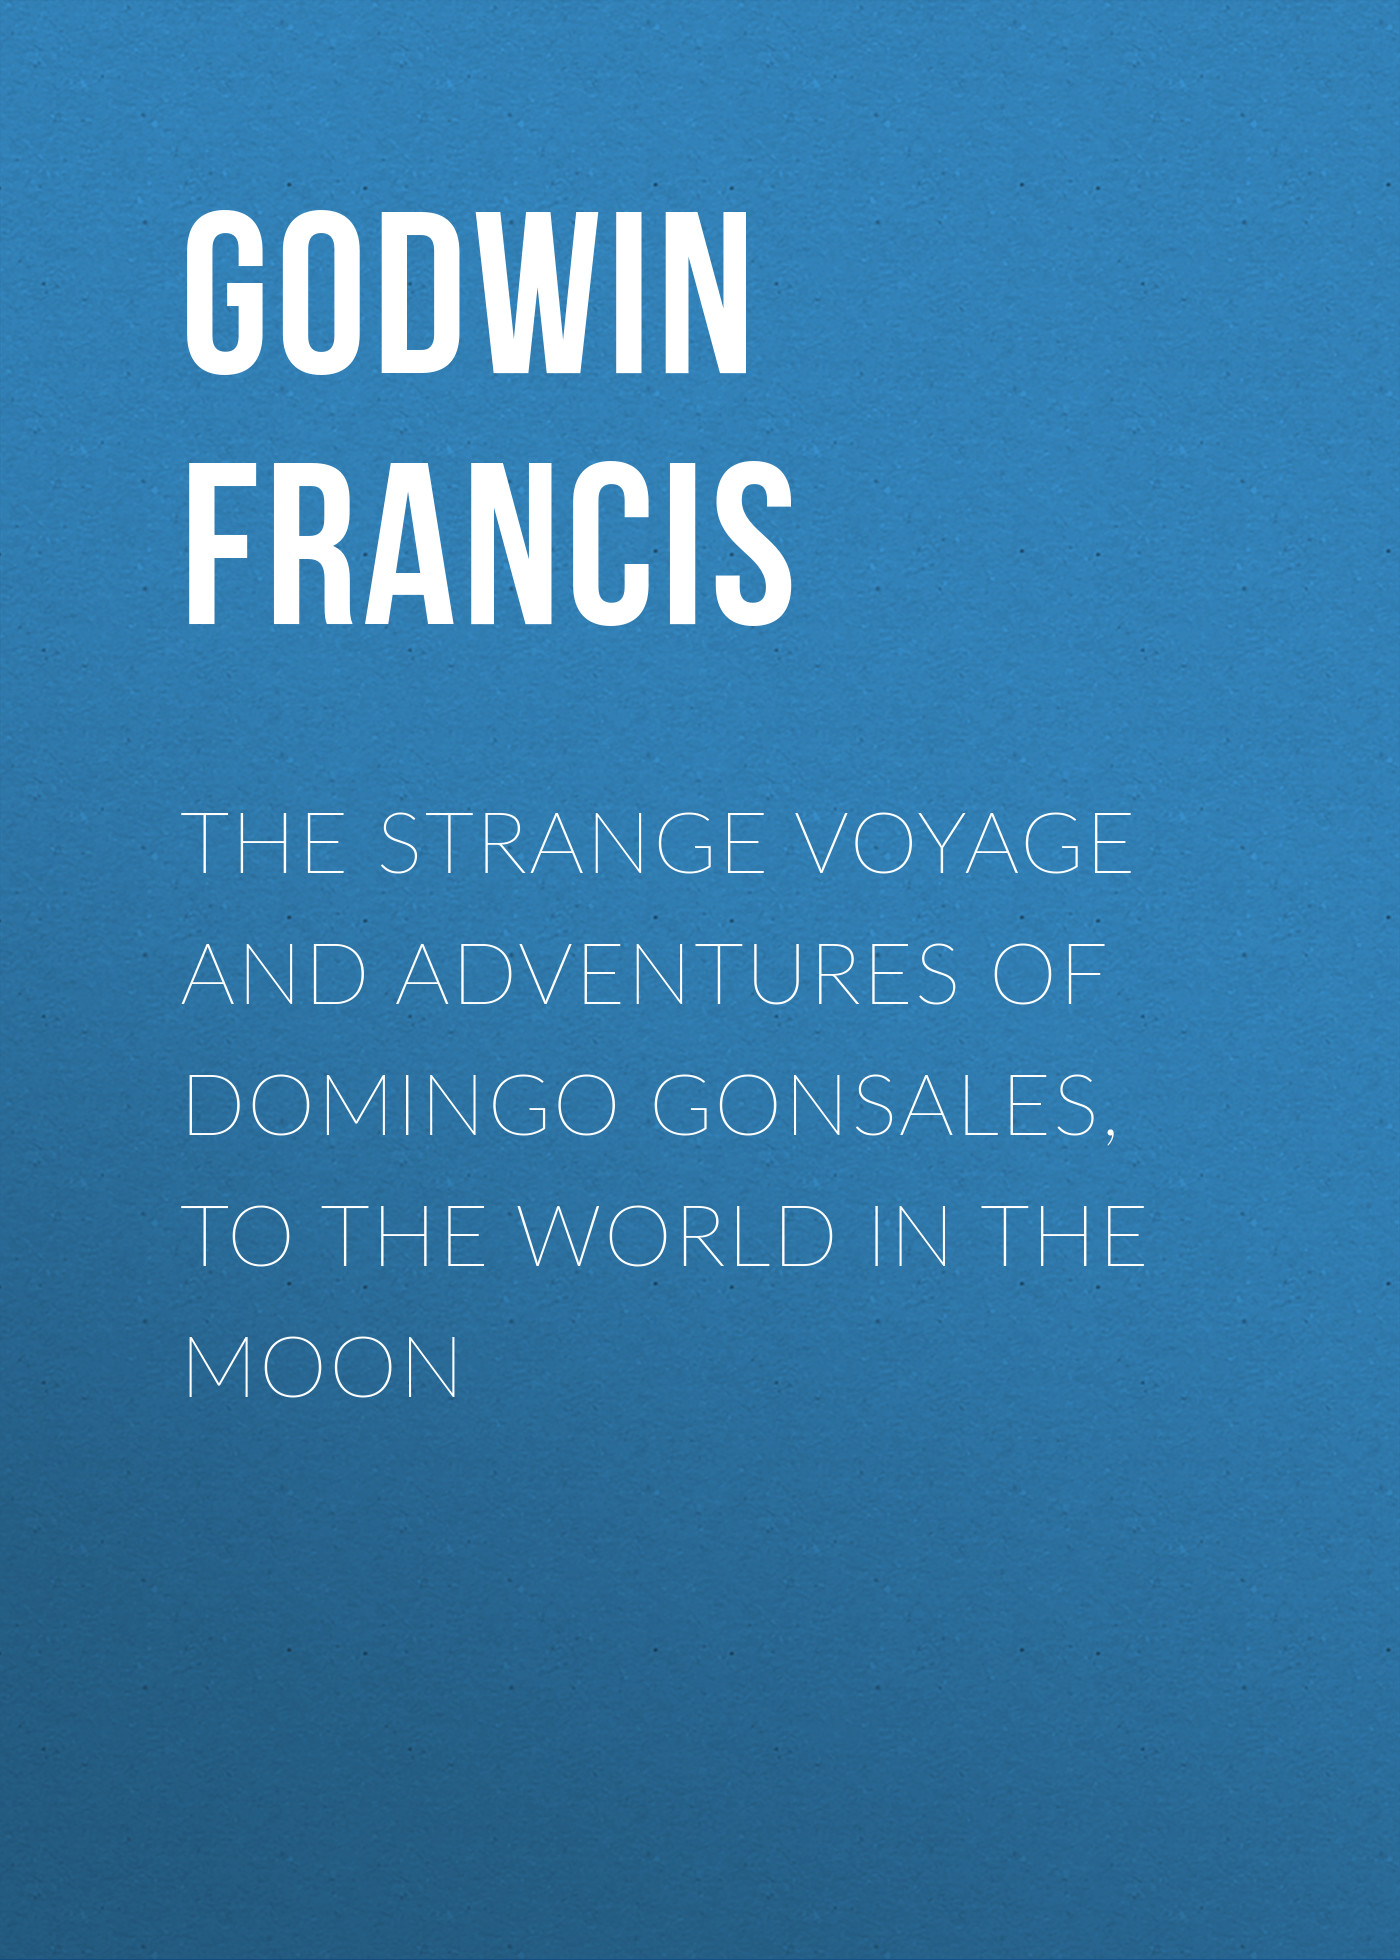 Godwin Francis The Strange Voyage and Adventures of Domingo Gonsales, to the World in the Moon sala george augustus the strange adventures of captain dangerous volume 1